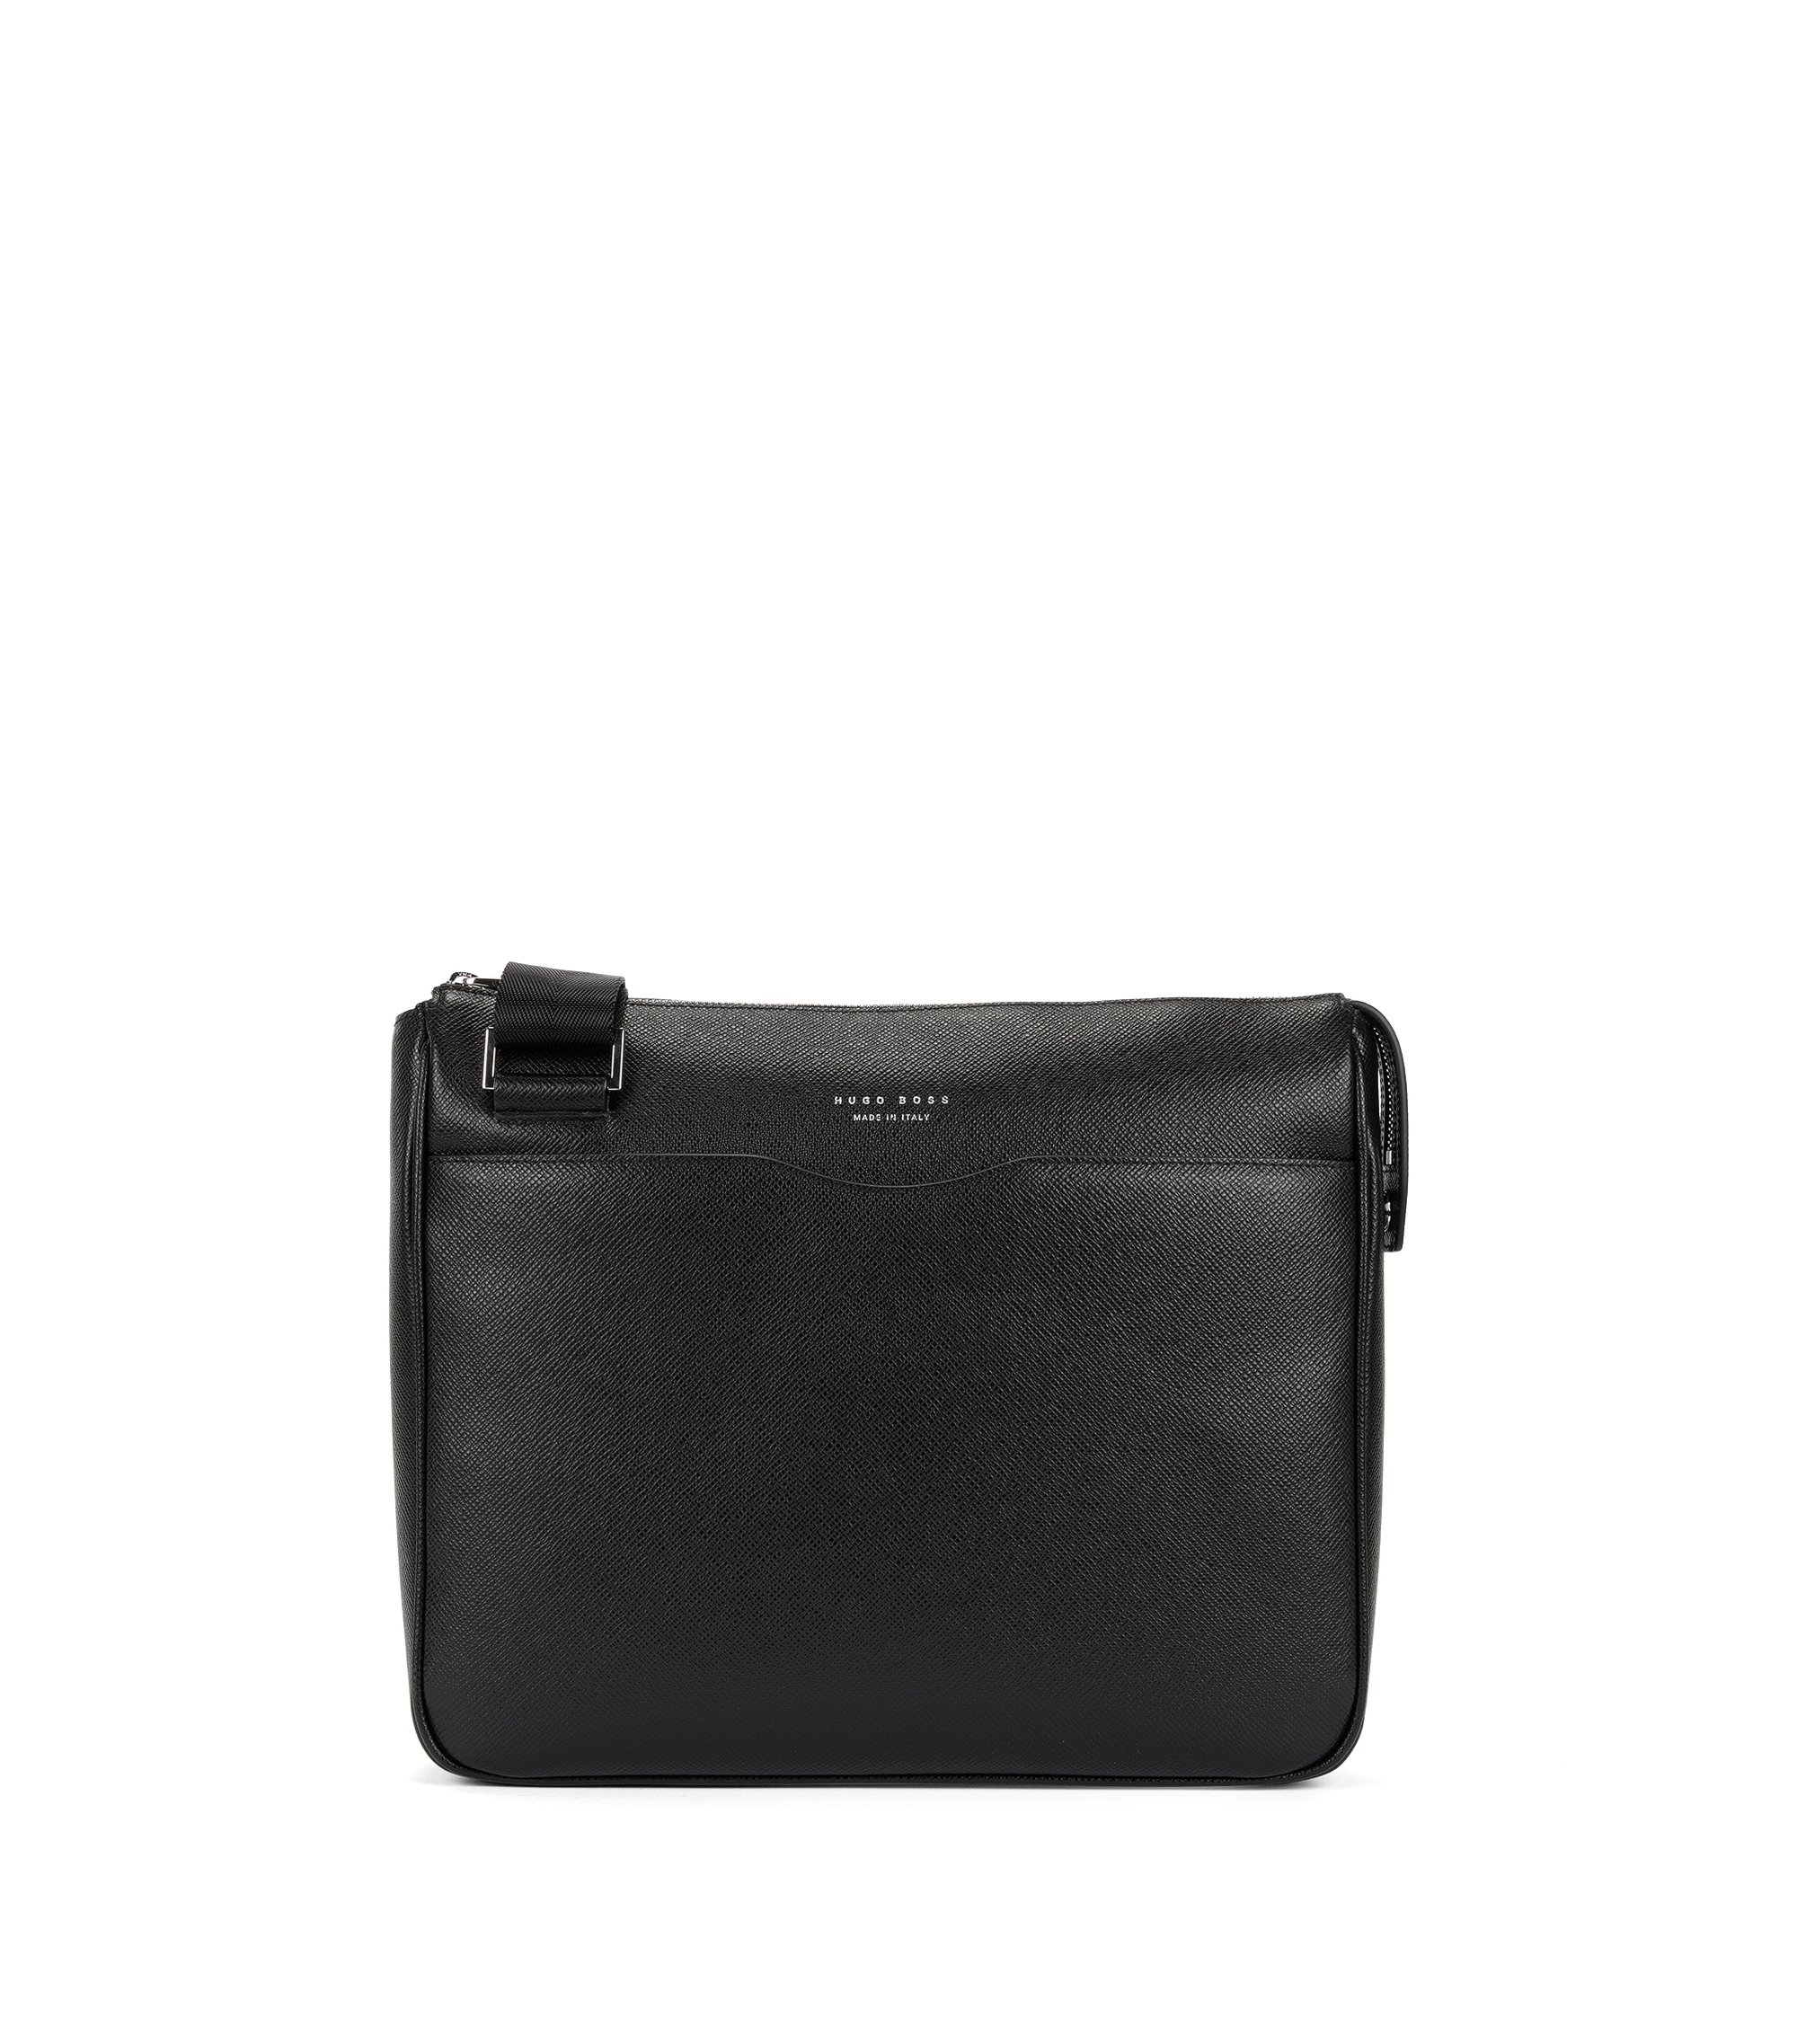 Leather Crossbody | Signature Cross Body, Black